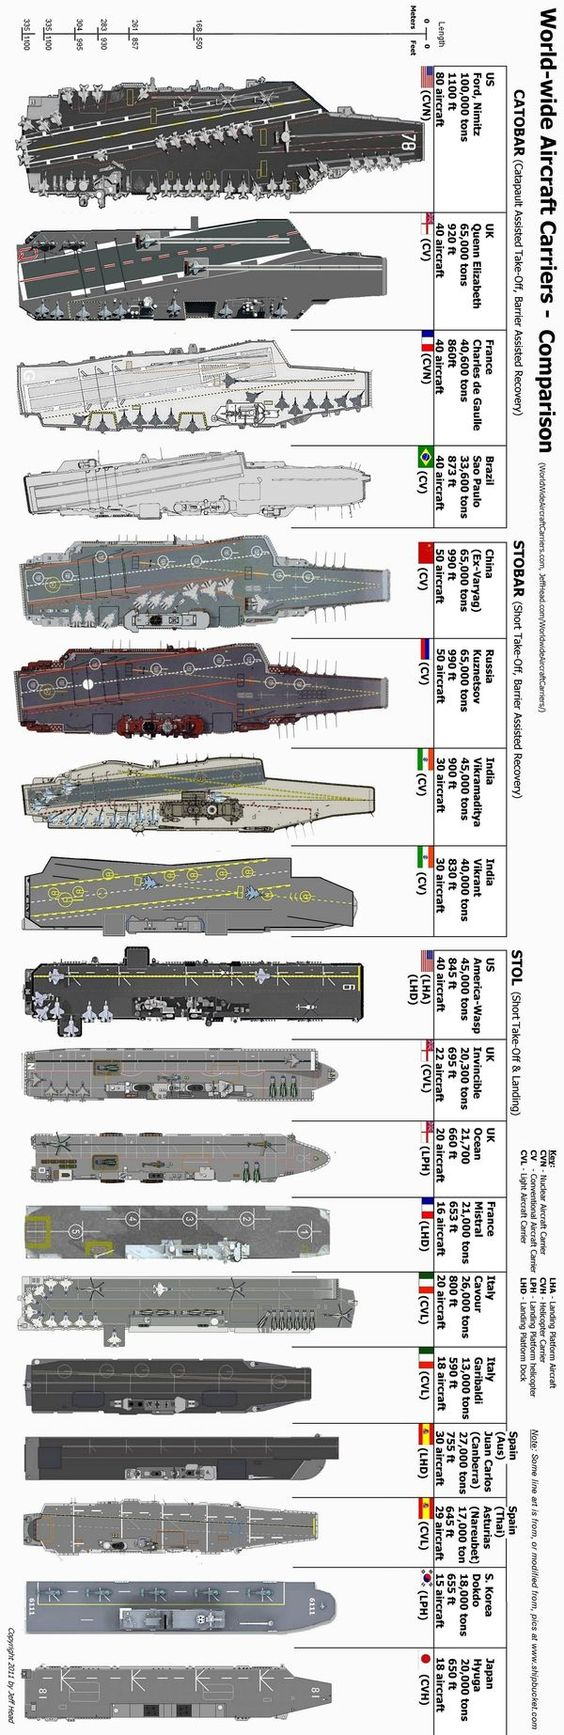 Wwii italy navy battleship roma 1943 plastic model images list - Stern View Of The Never Finished Italian Aircraft Carrier Aquila Ships Pinterest Aircraft Carrier Aircraft And Battleship